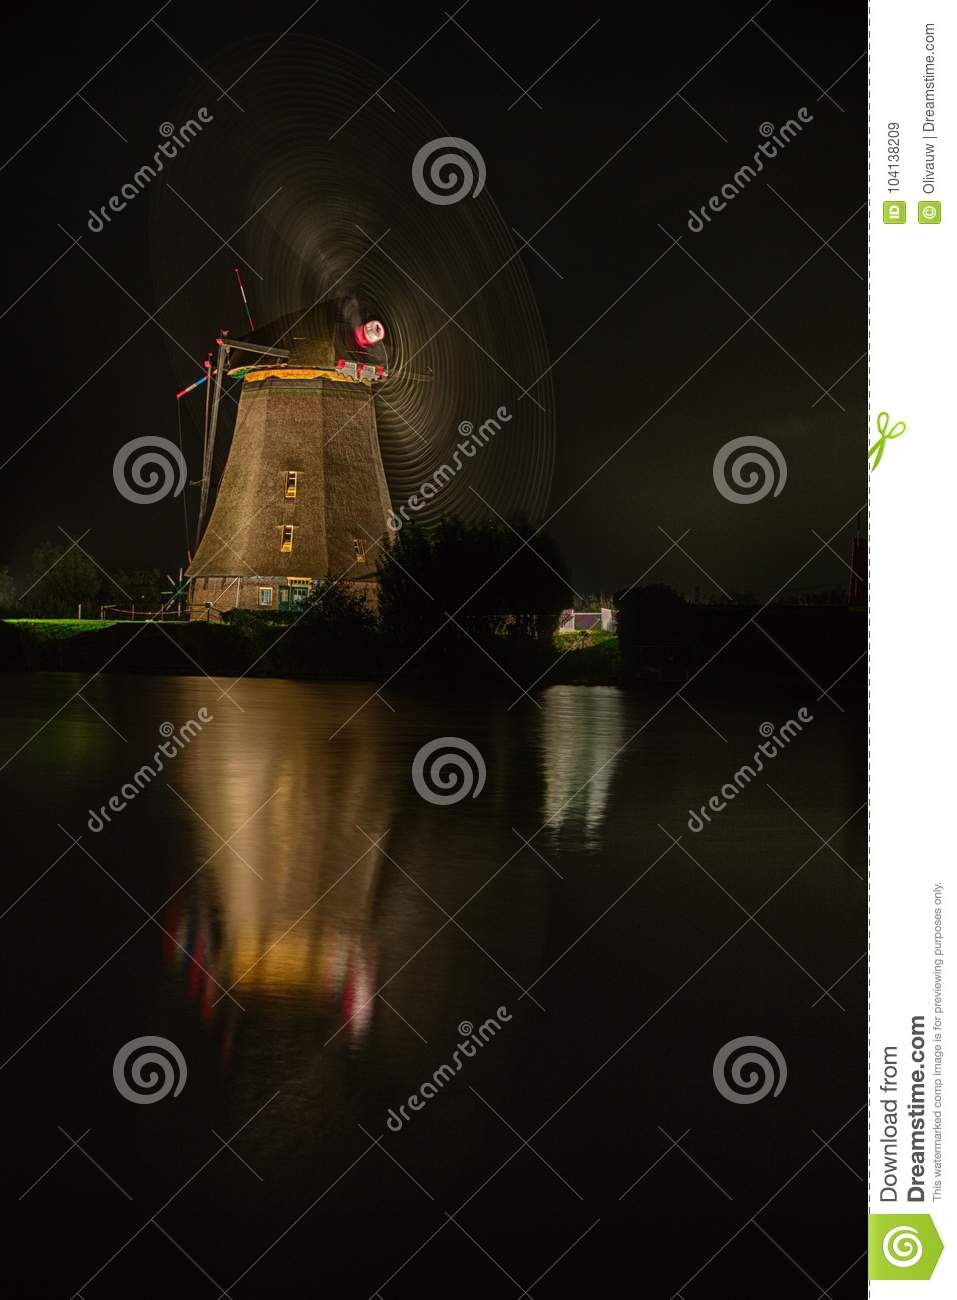 Slow Capture of a Windmill in Motion at Night